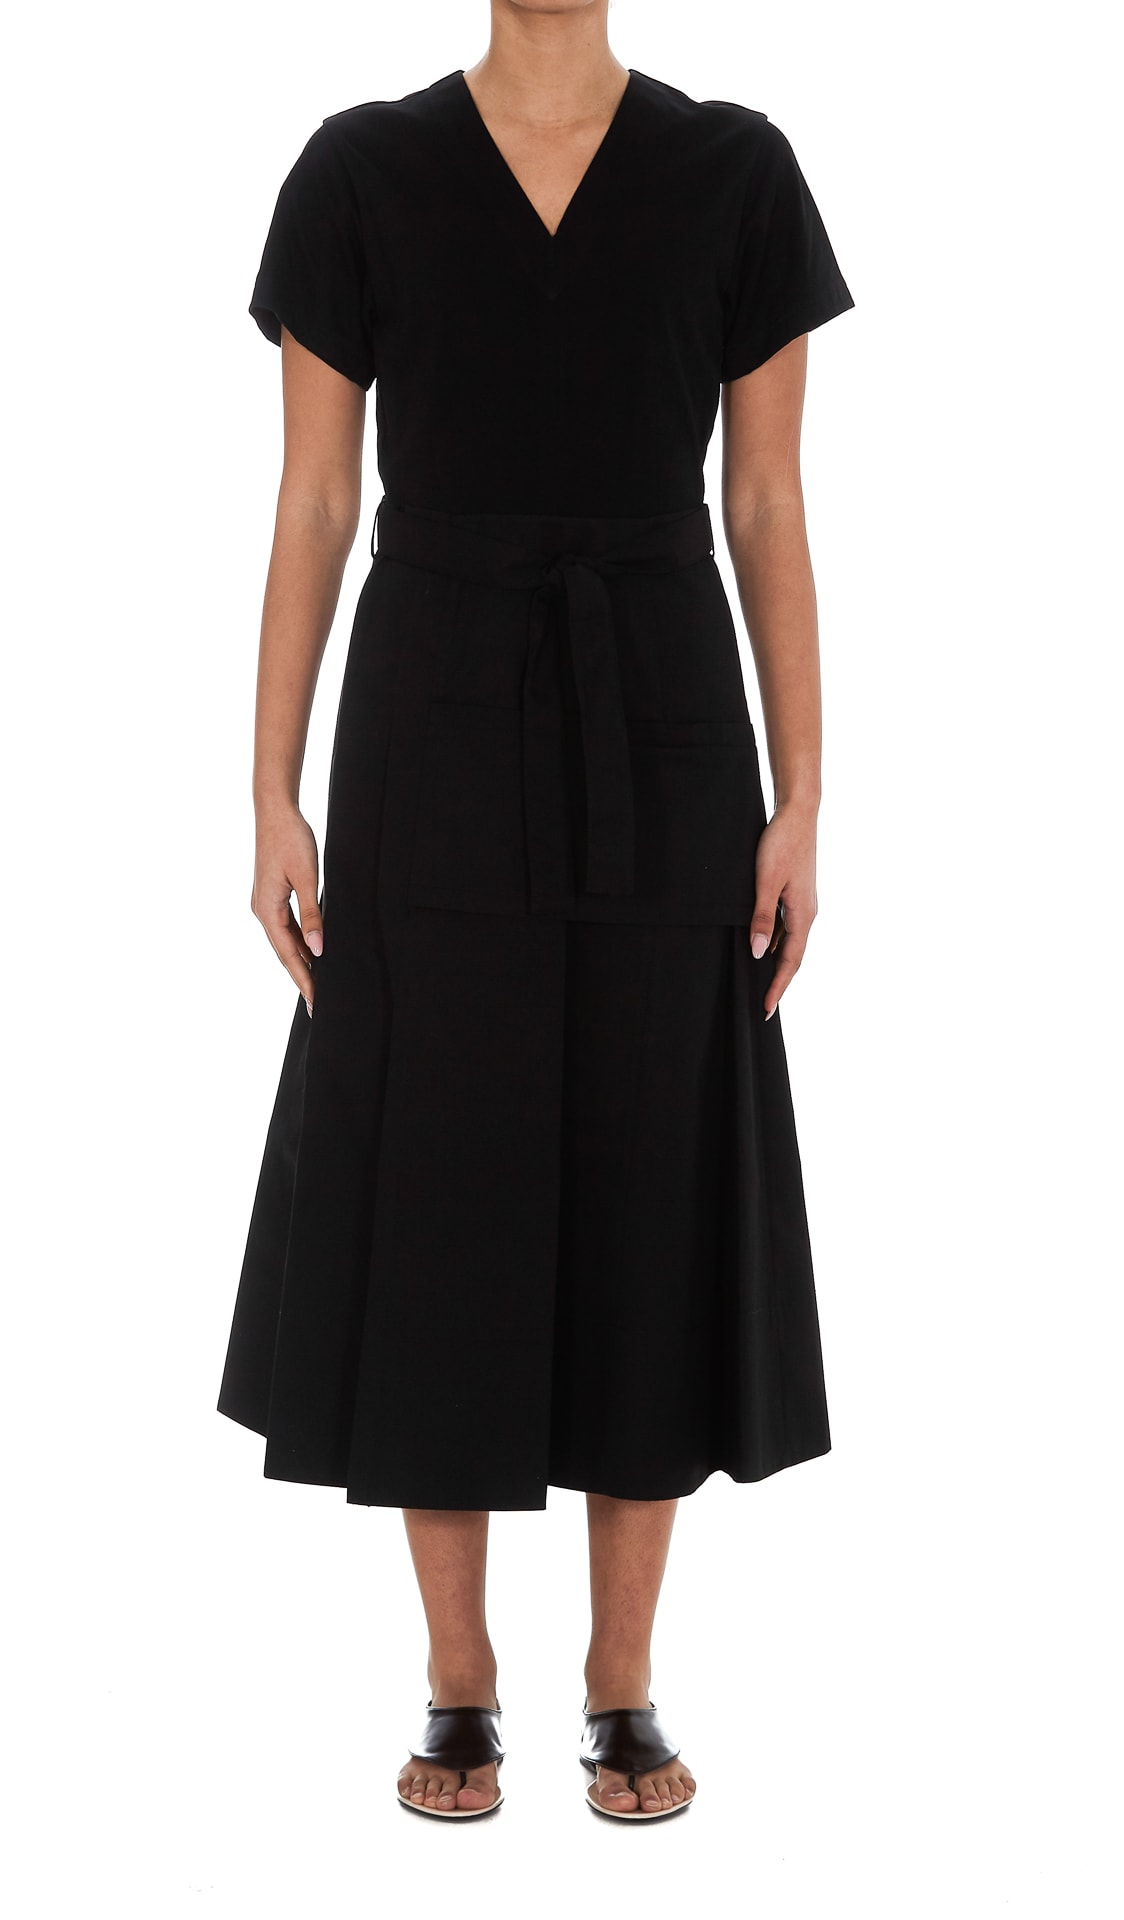 3.1 Phillip Lim UTILITY DRESS